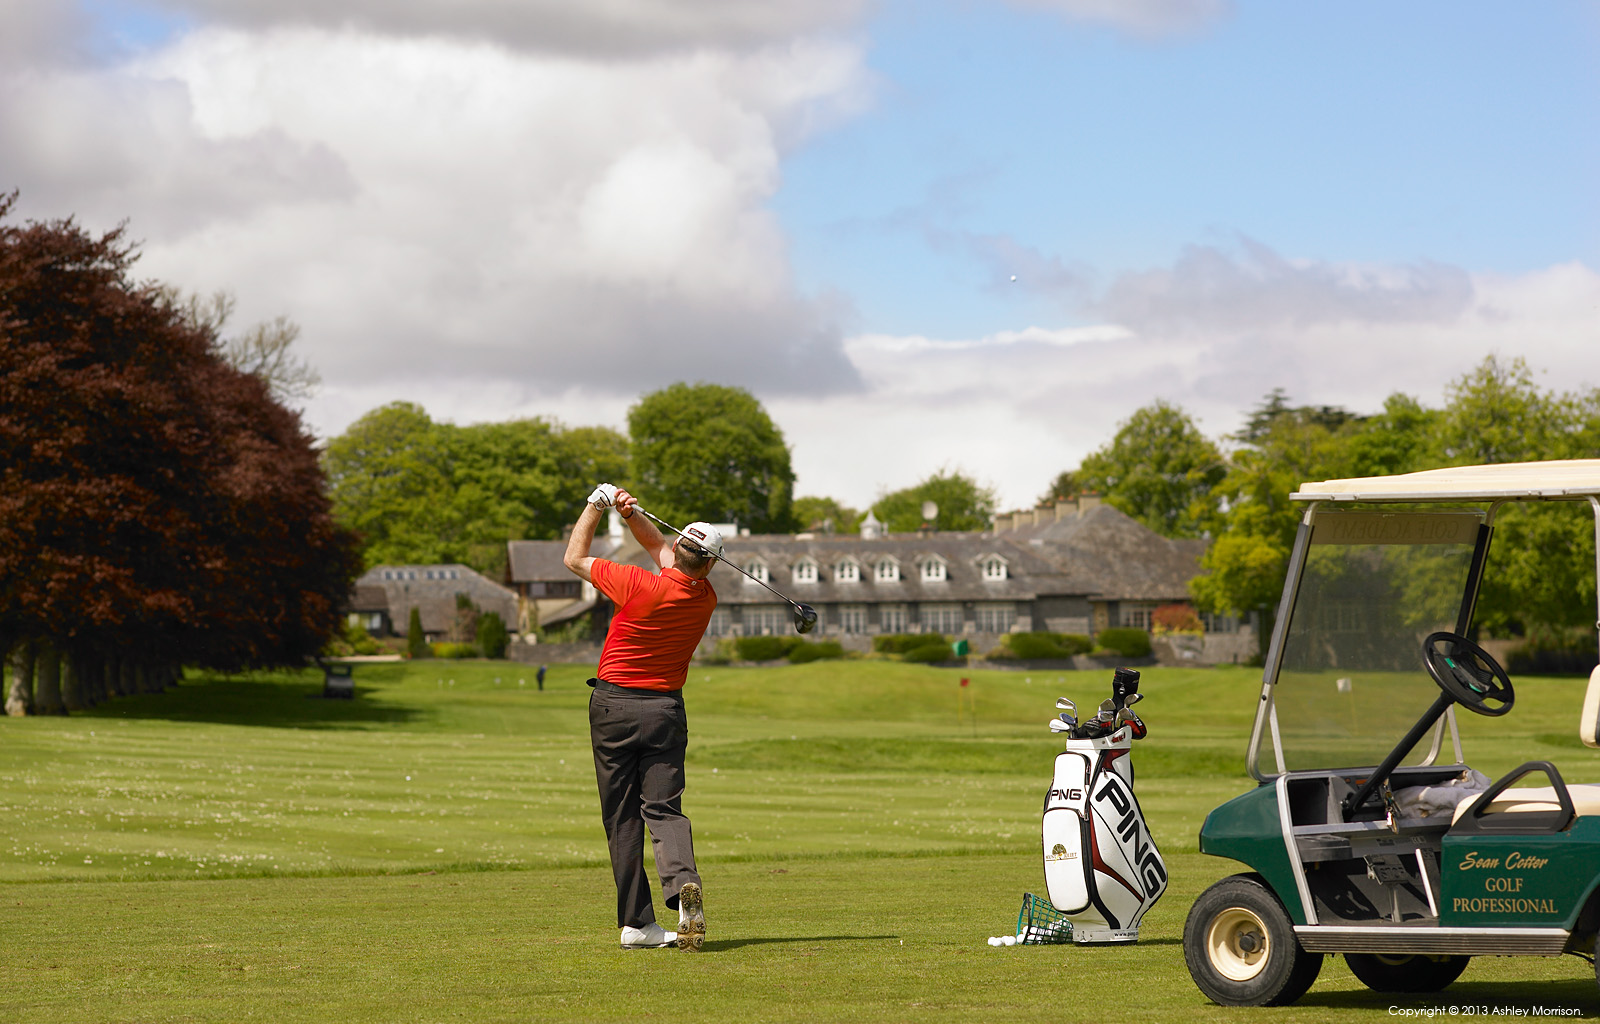 Sean Cotter the Golf Professional at Mount Juliet Country Estate in County Kilkenny by Ashley Morrison.